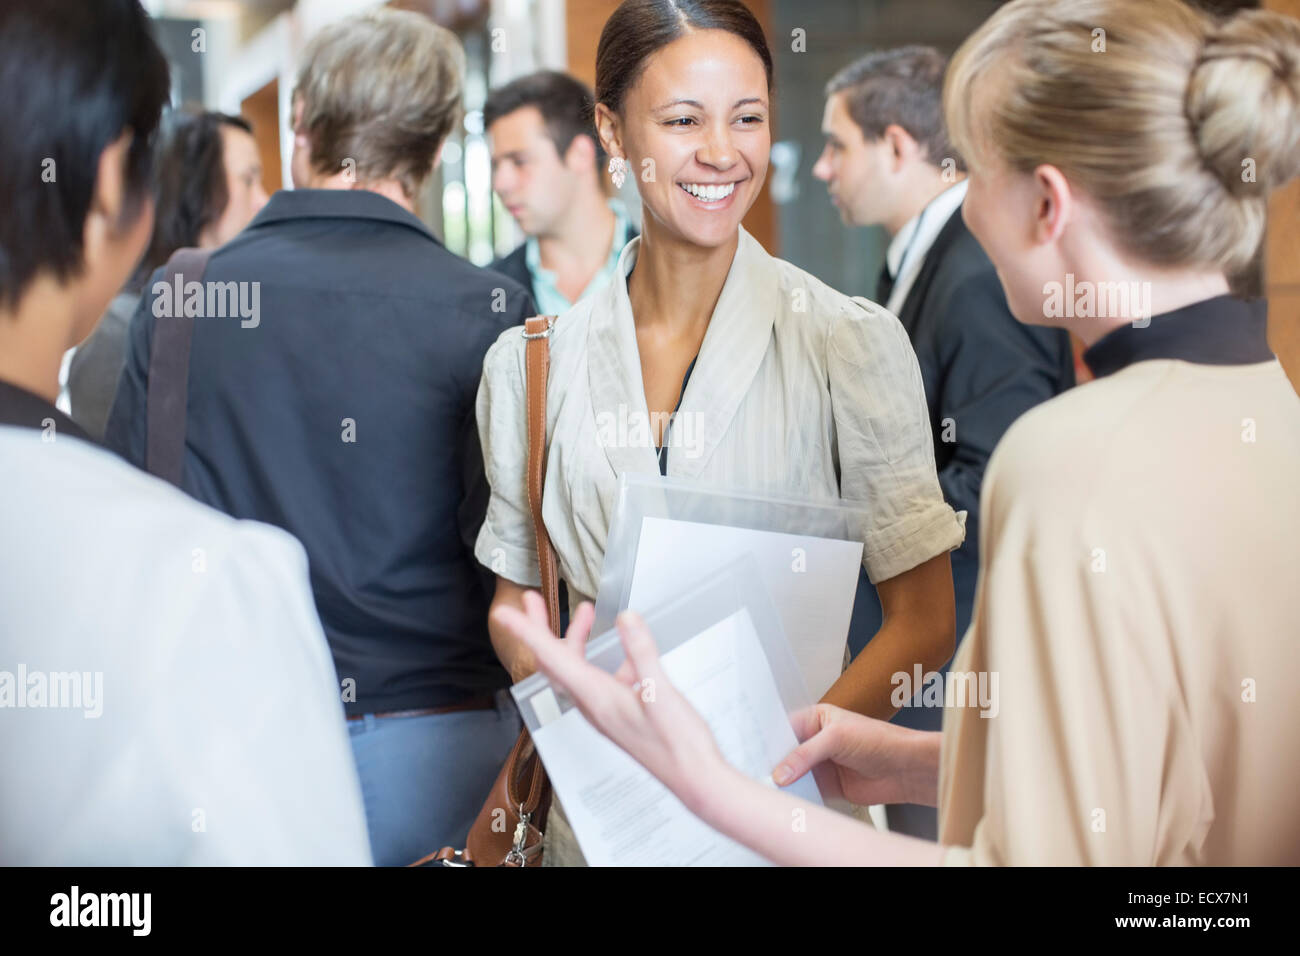 Portrait of two smiling women holding files and talking, standing in crowded lobby - Stock Image